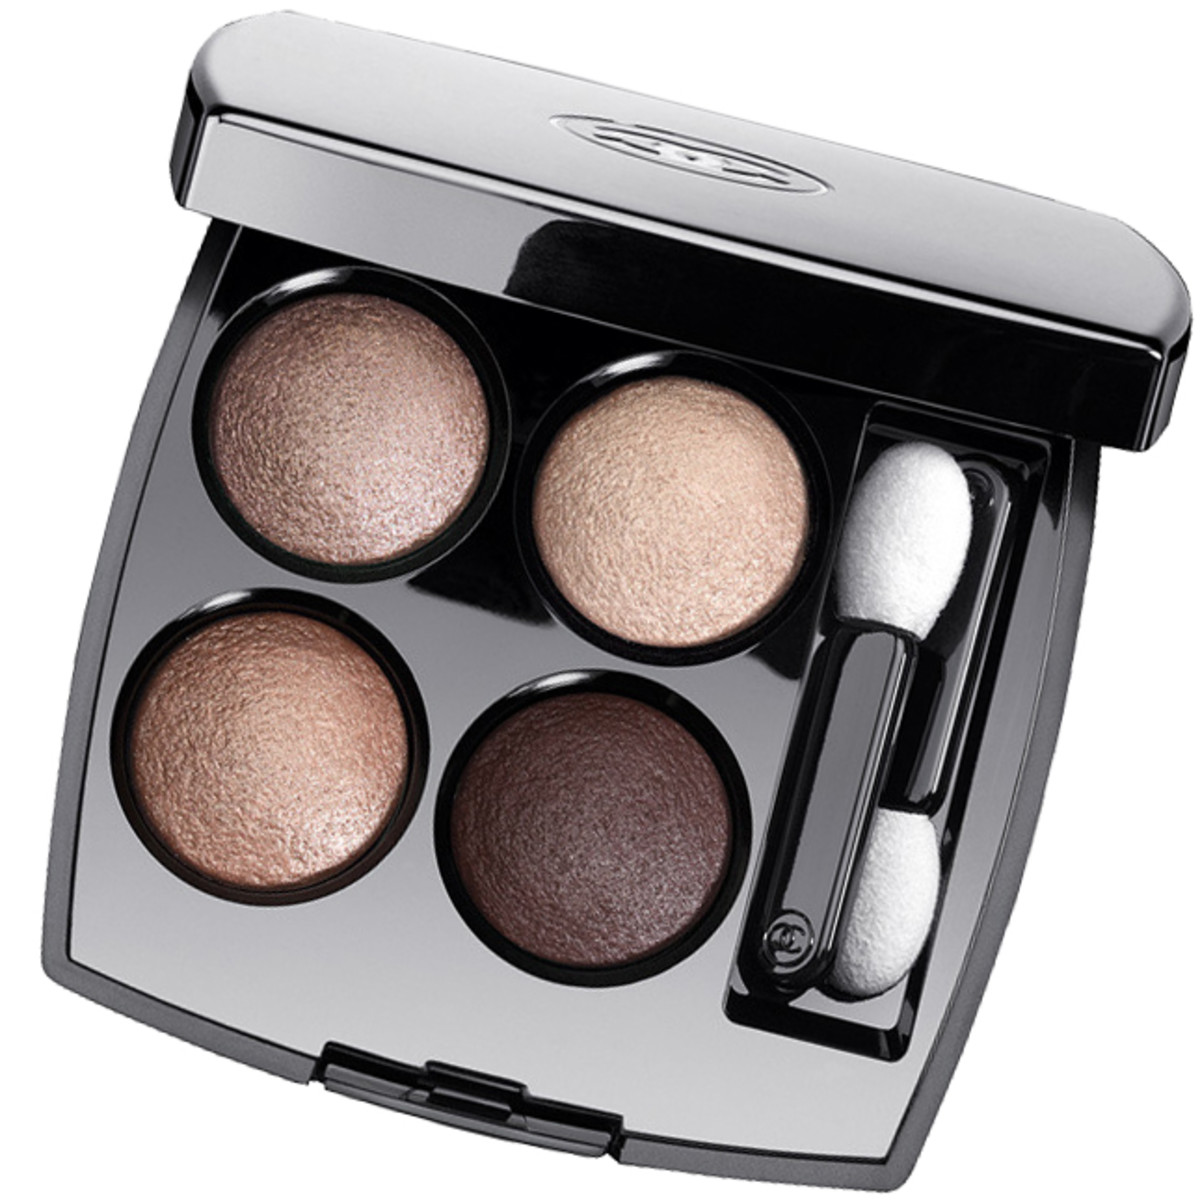 Chanel Tisse Rivoli eye shadow quad